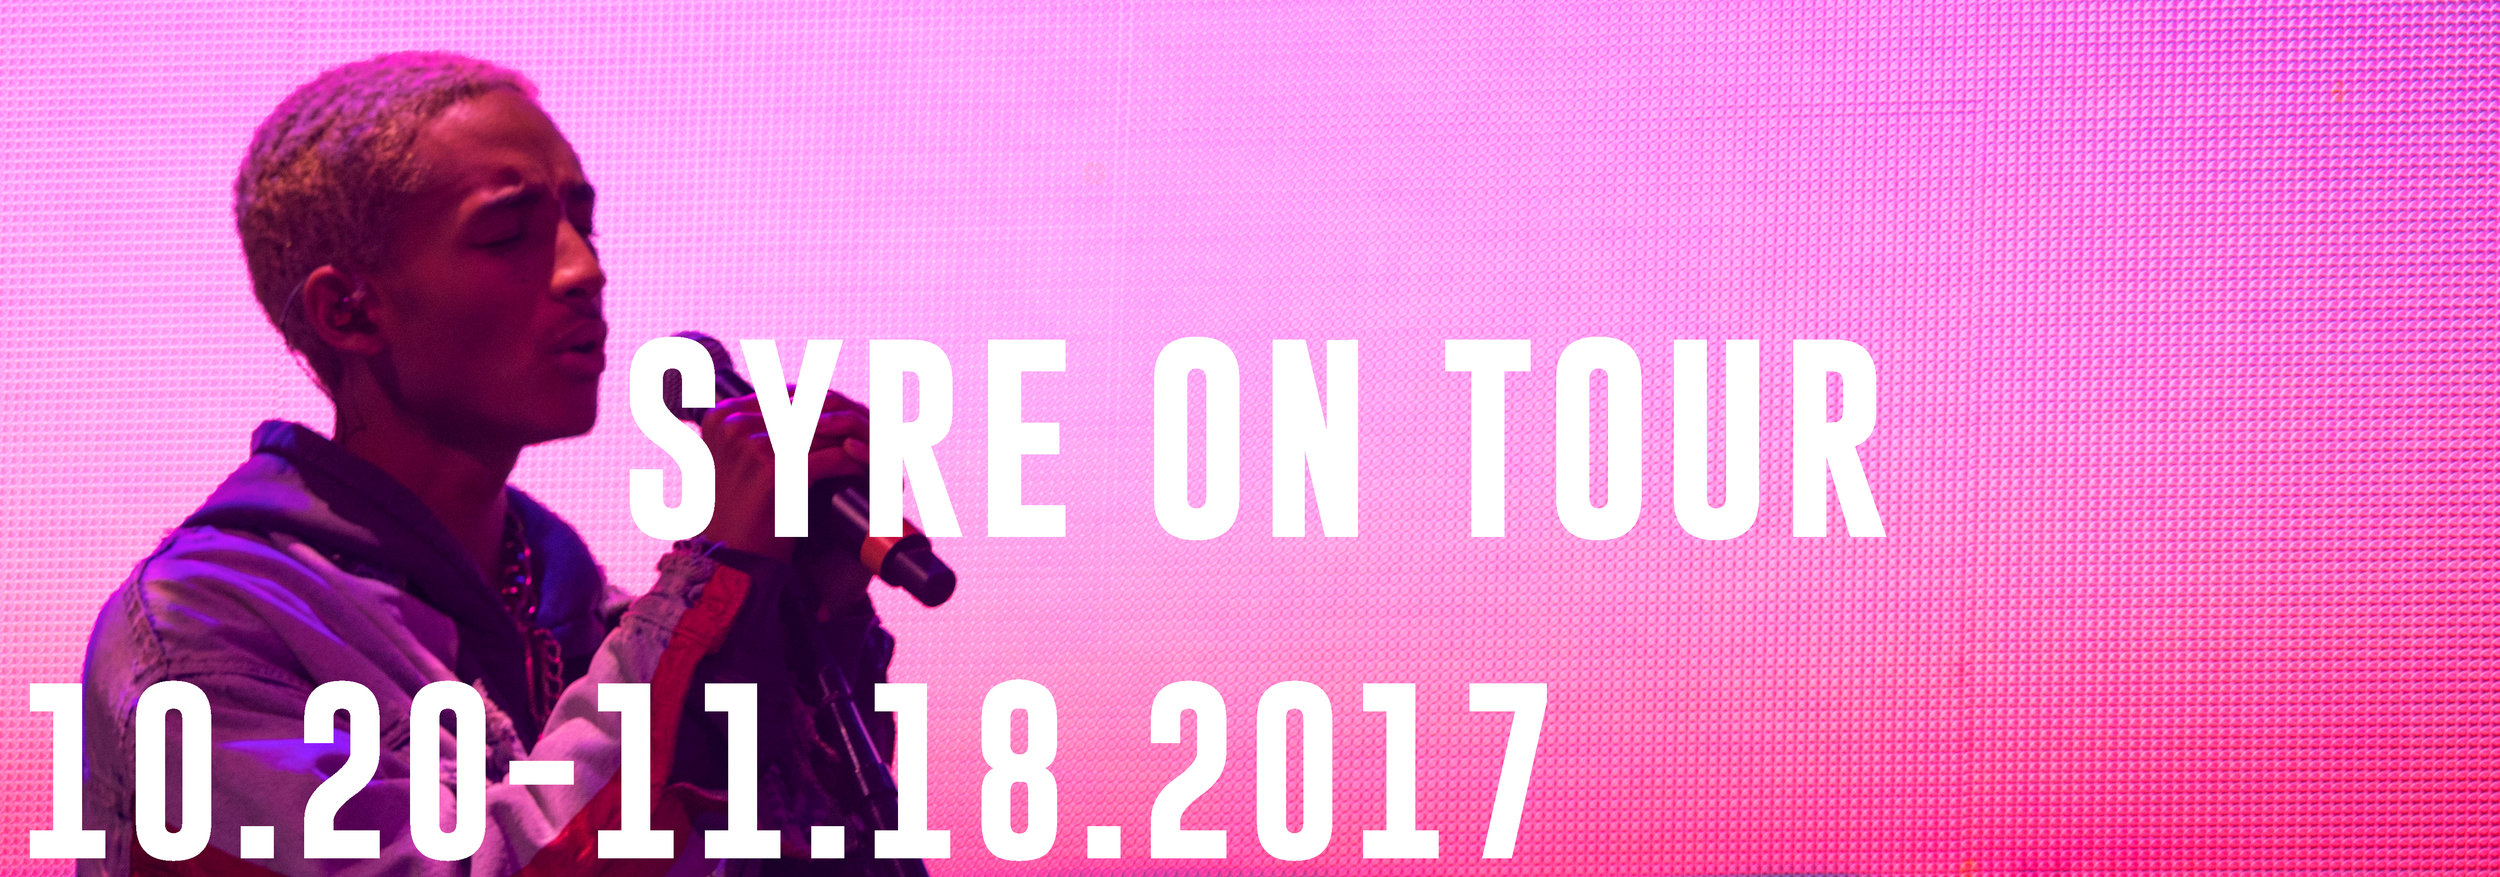 SYRE_TOUR_TEMPLATE-01.jpg